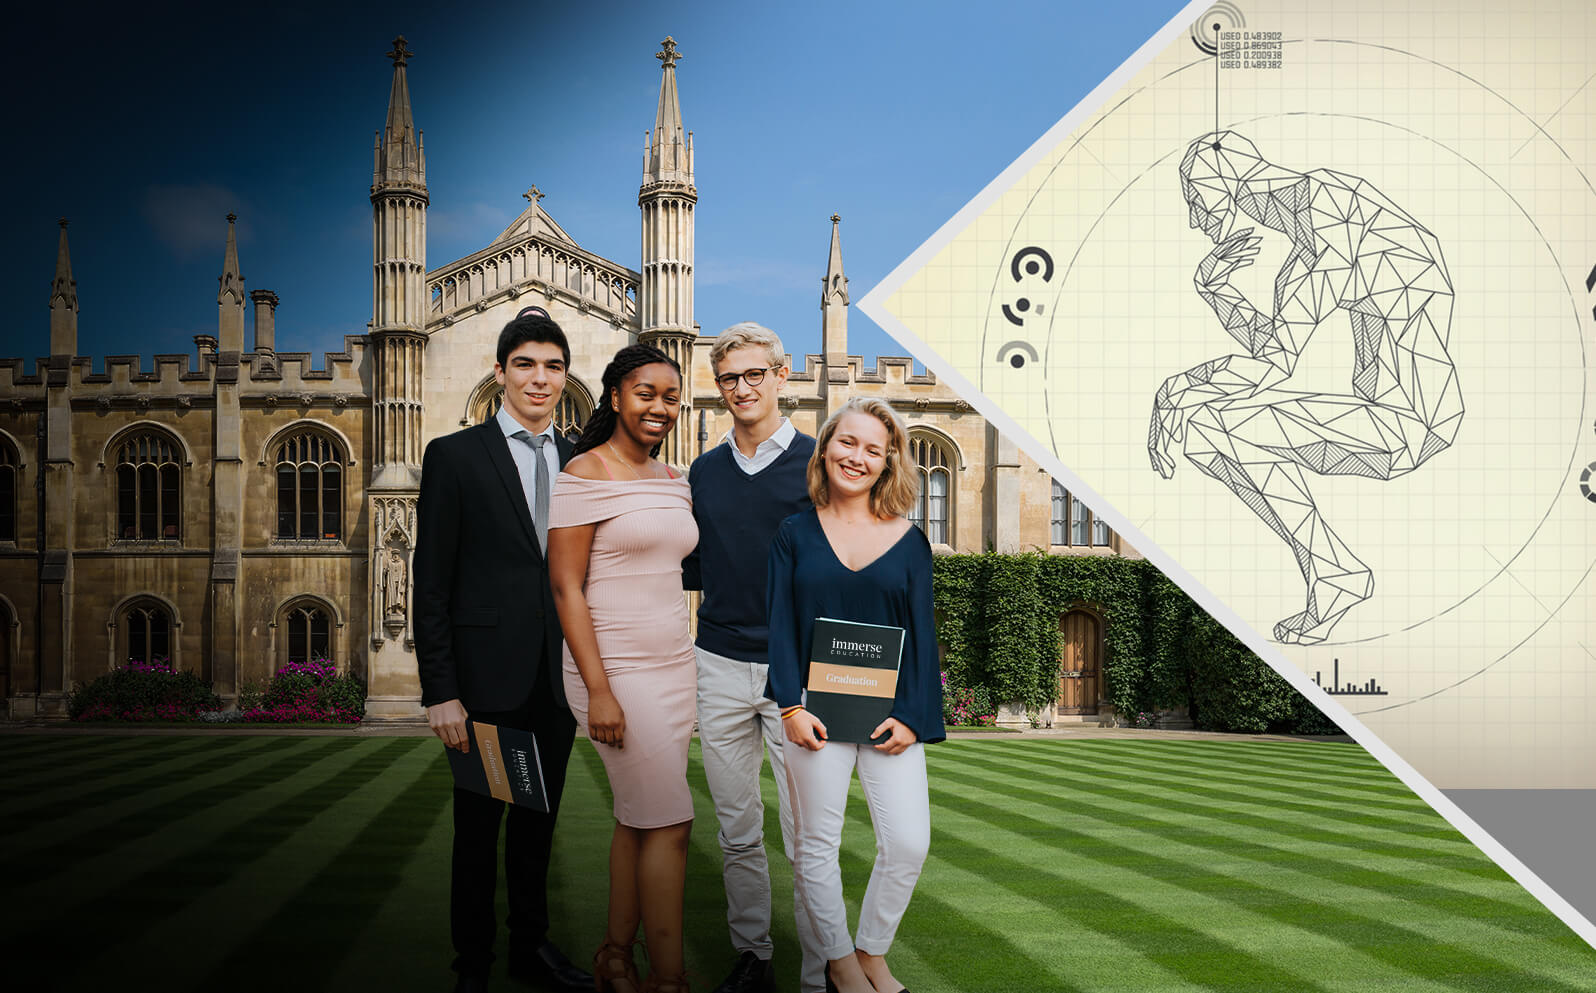 Cambridge Philosophy Summer Program for Ages 16-18